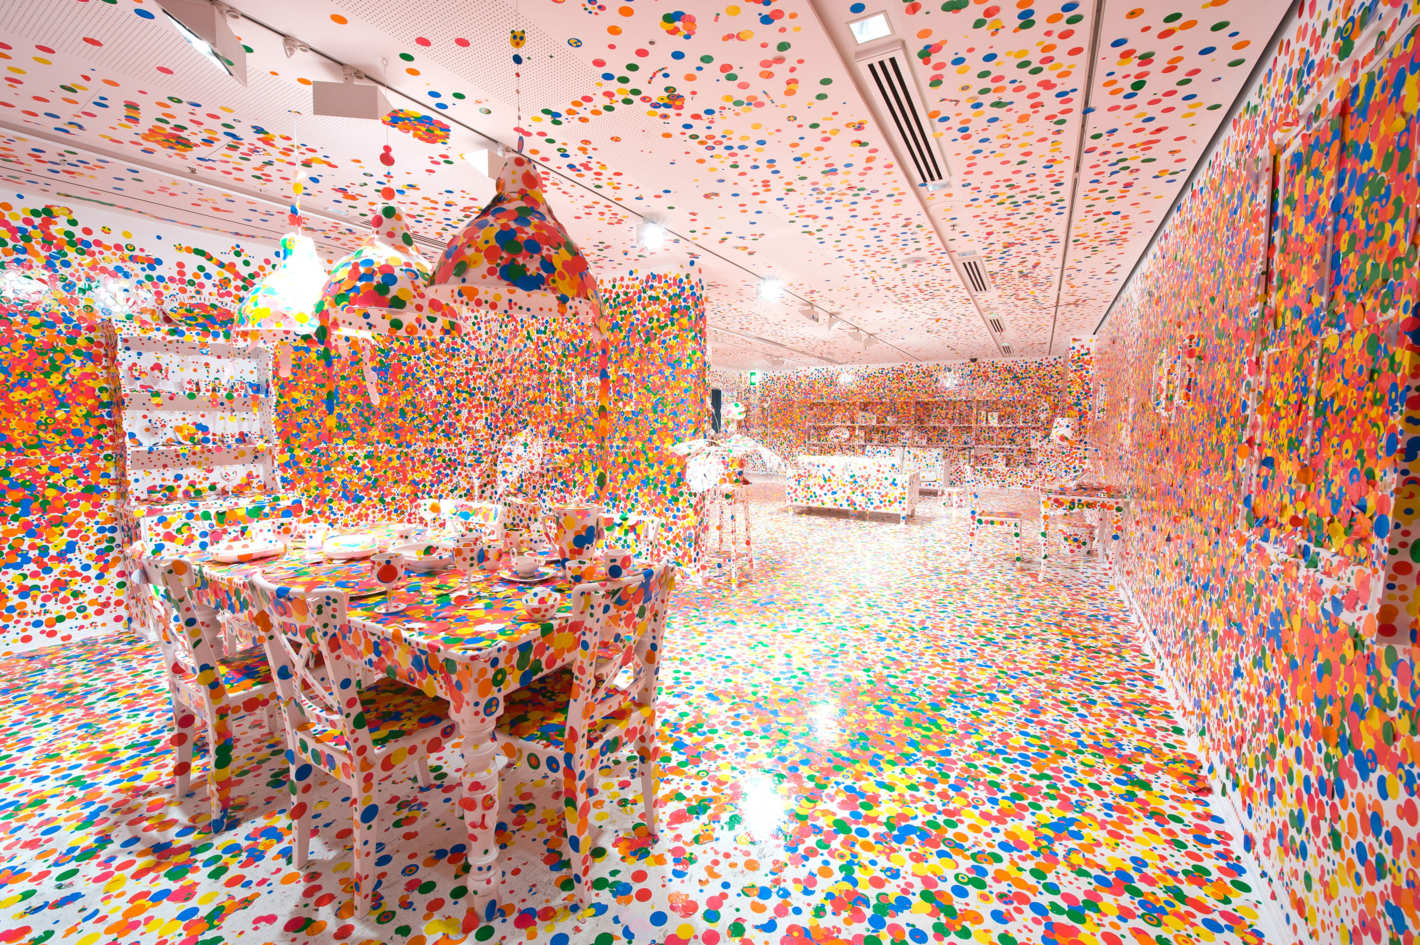 Комната забвения (The Obliteration Room), 2002–2018